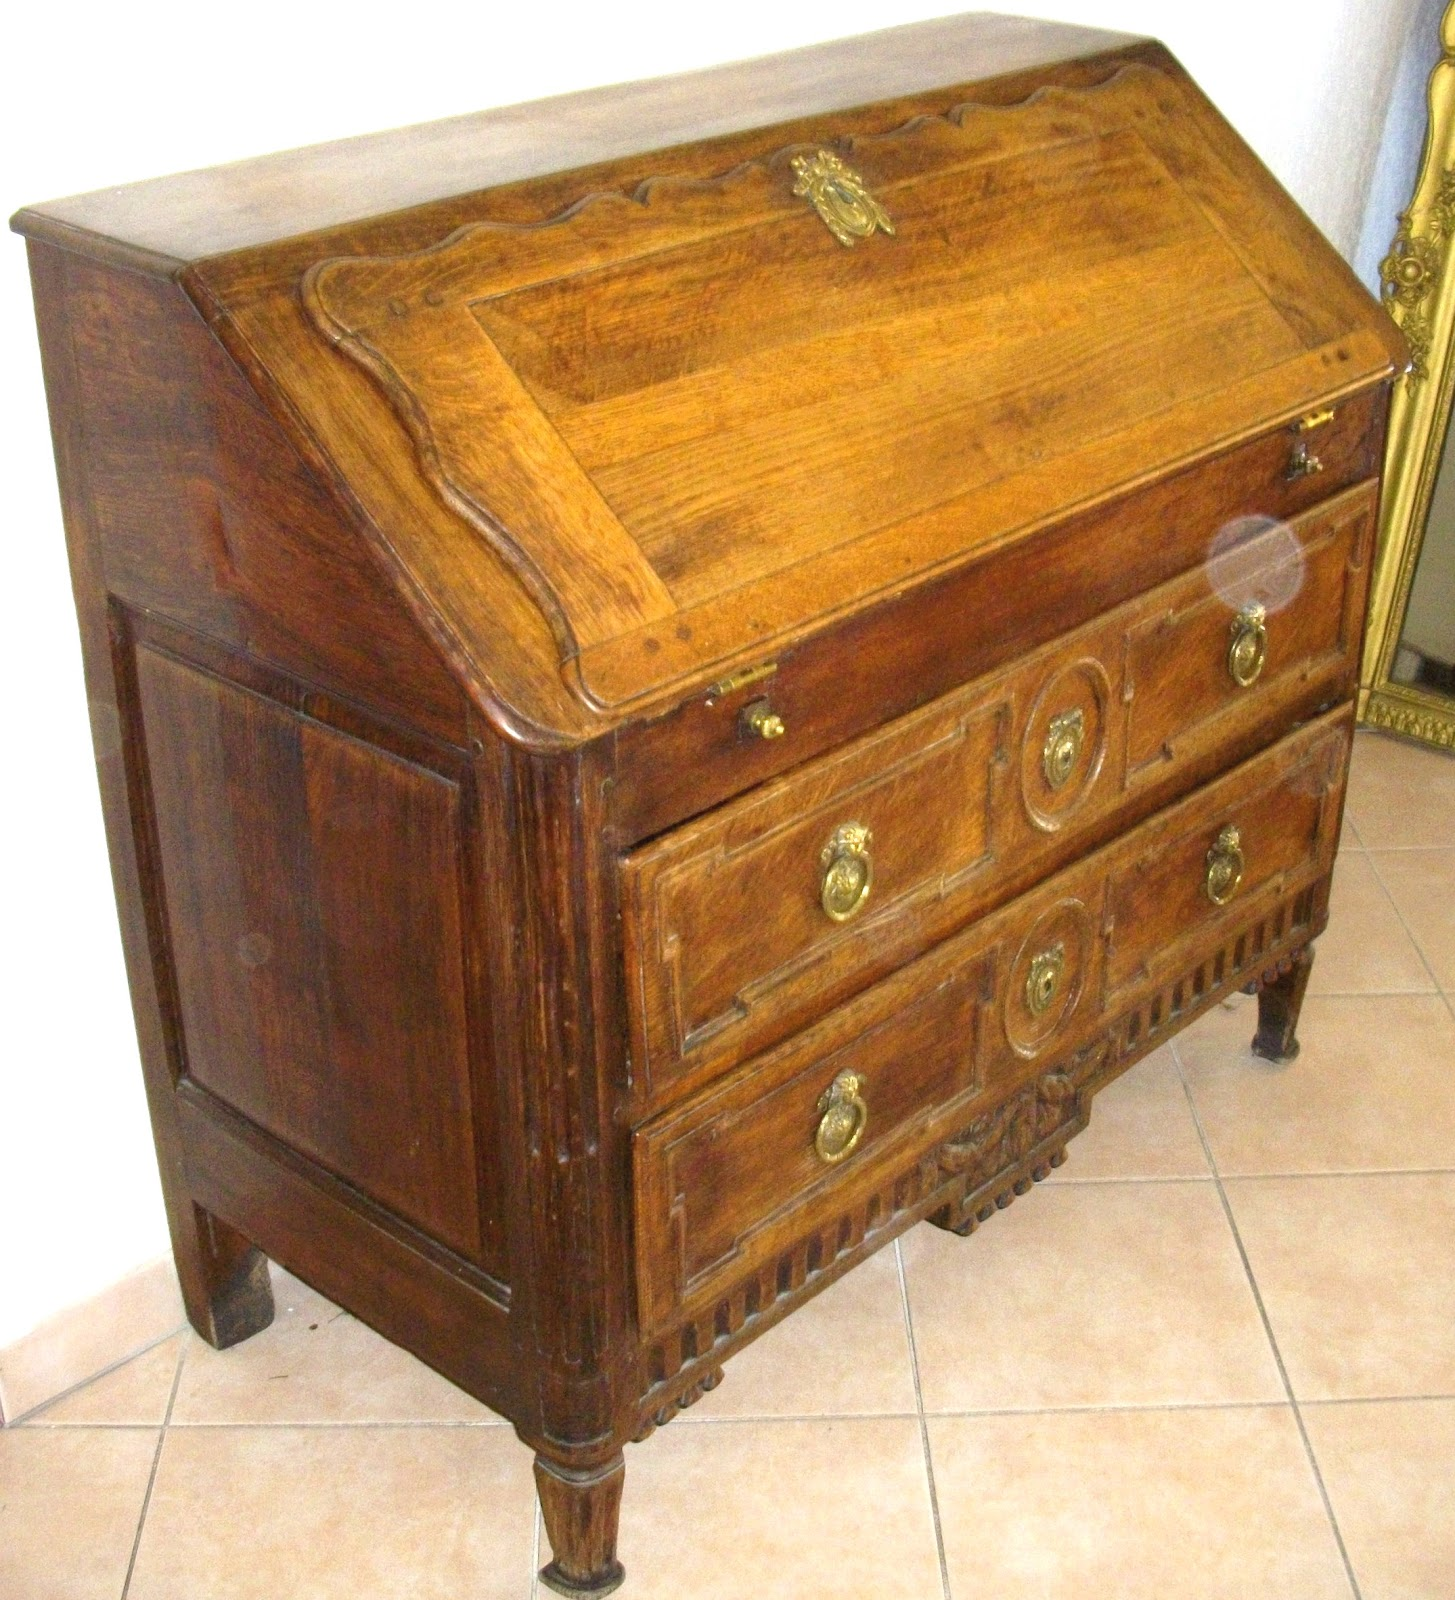 Meuble ancien bureau pente secr taire dos d 39 ane a secret for Meuble tiroir bureau